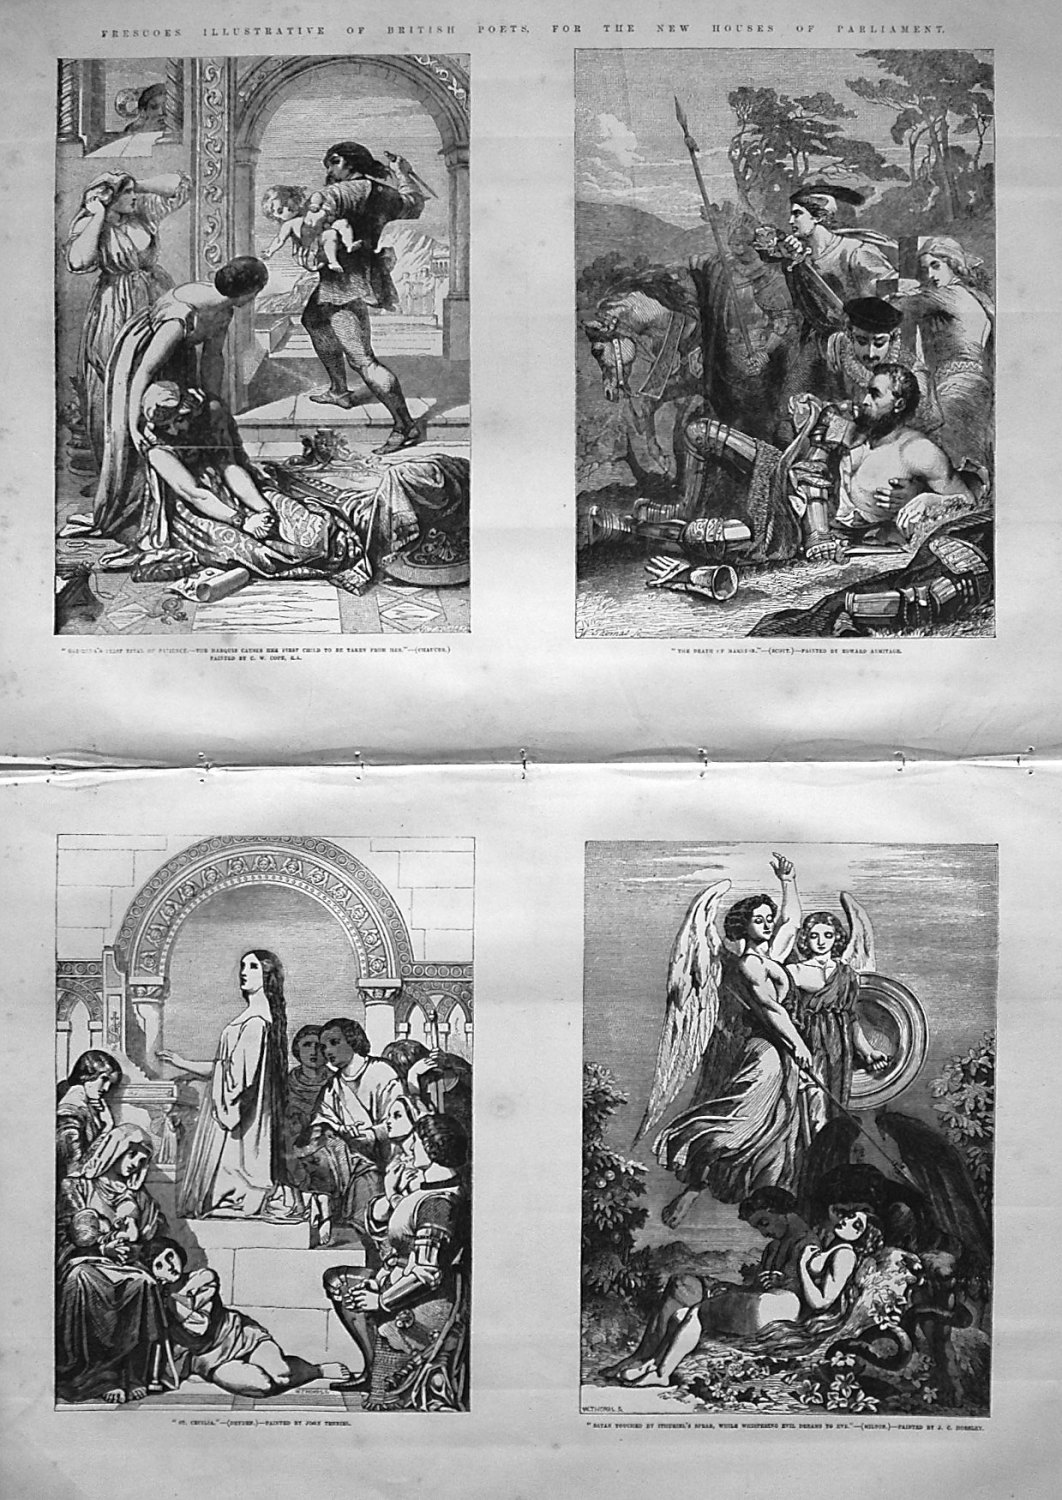 Frescoes Illustrative of English Poets, for the New Houses of Parliament. 1